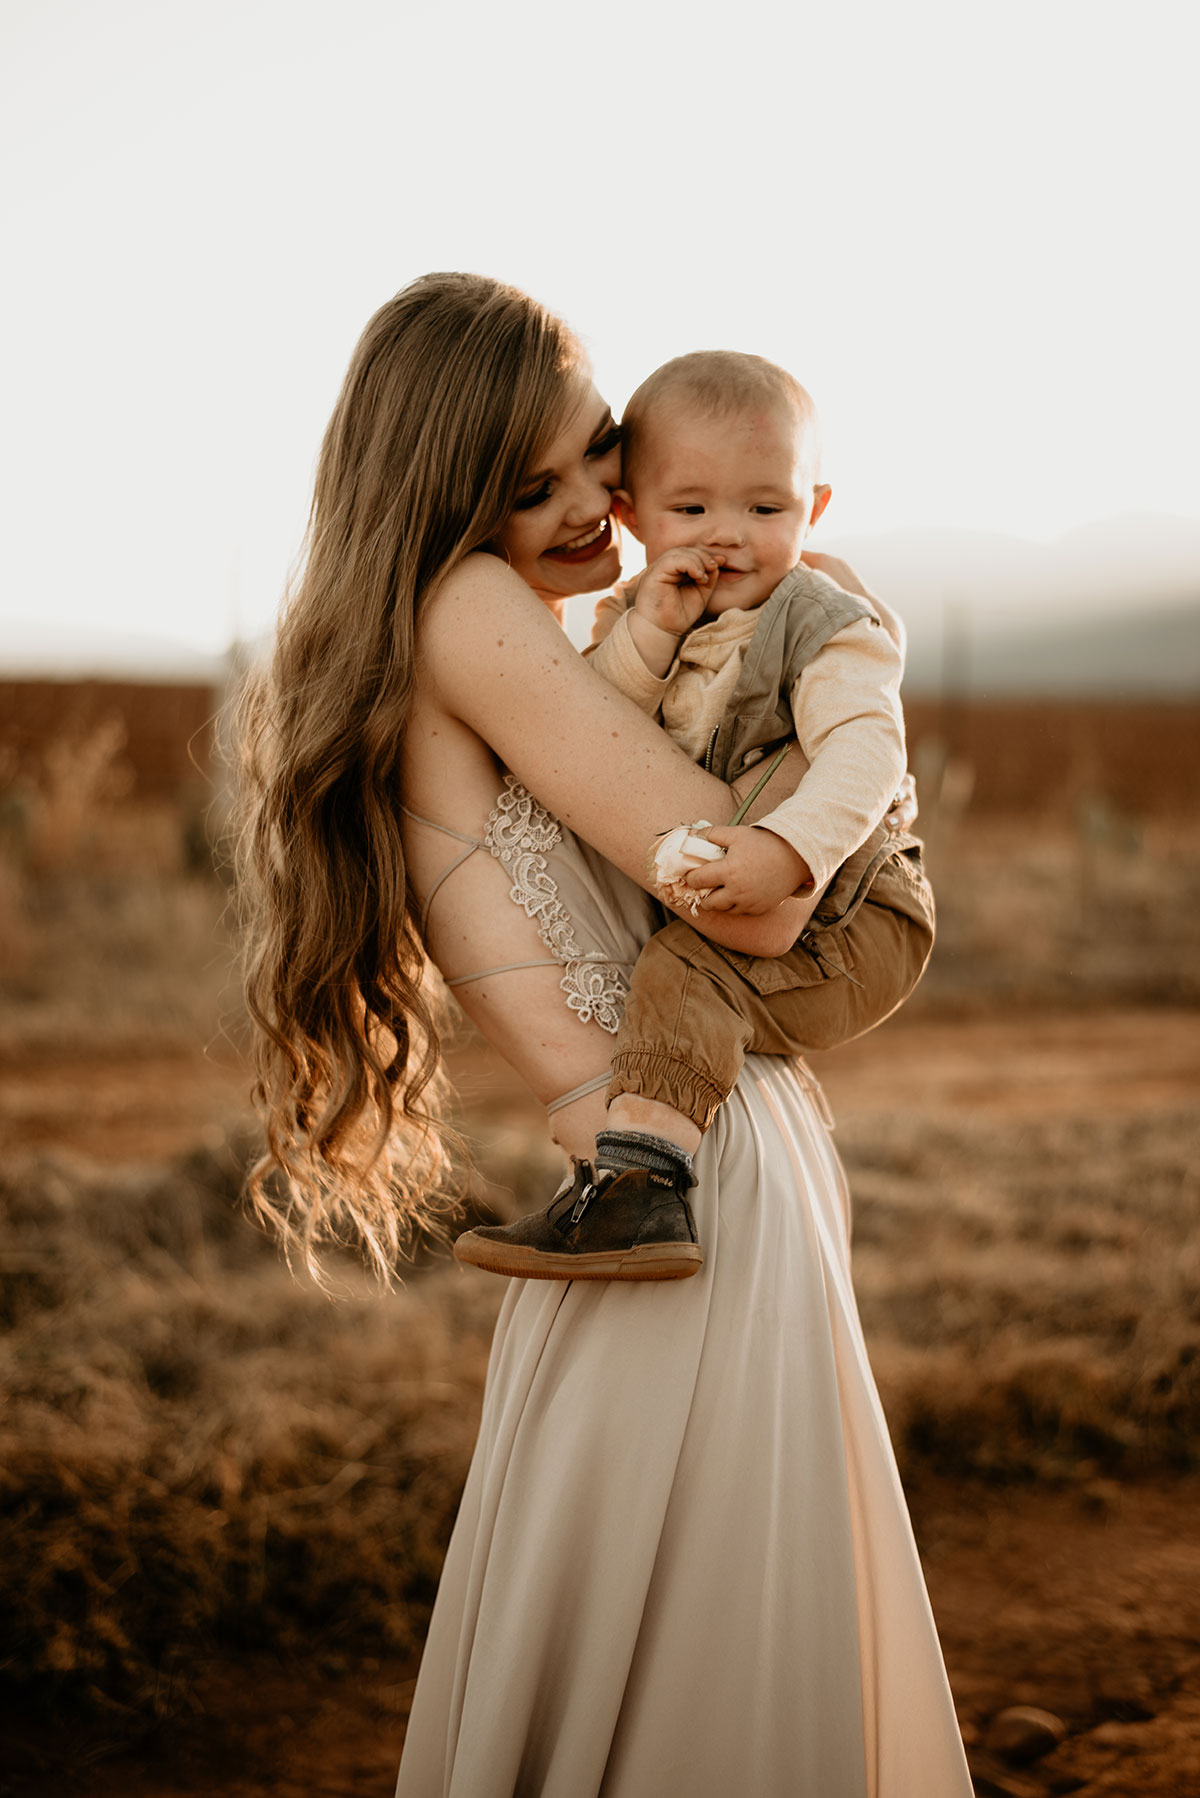 Mom hugging her boy at The Nut Farm Venue by Echo Photography